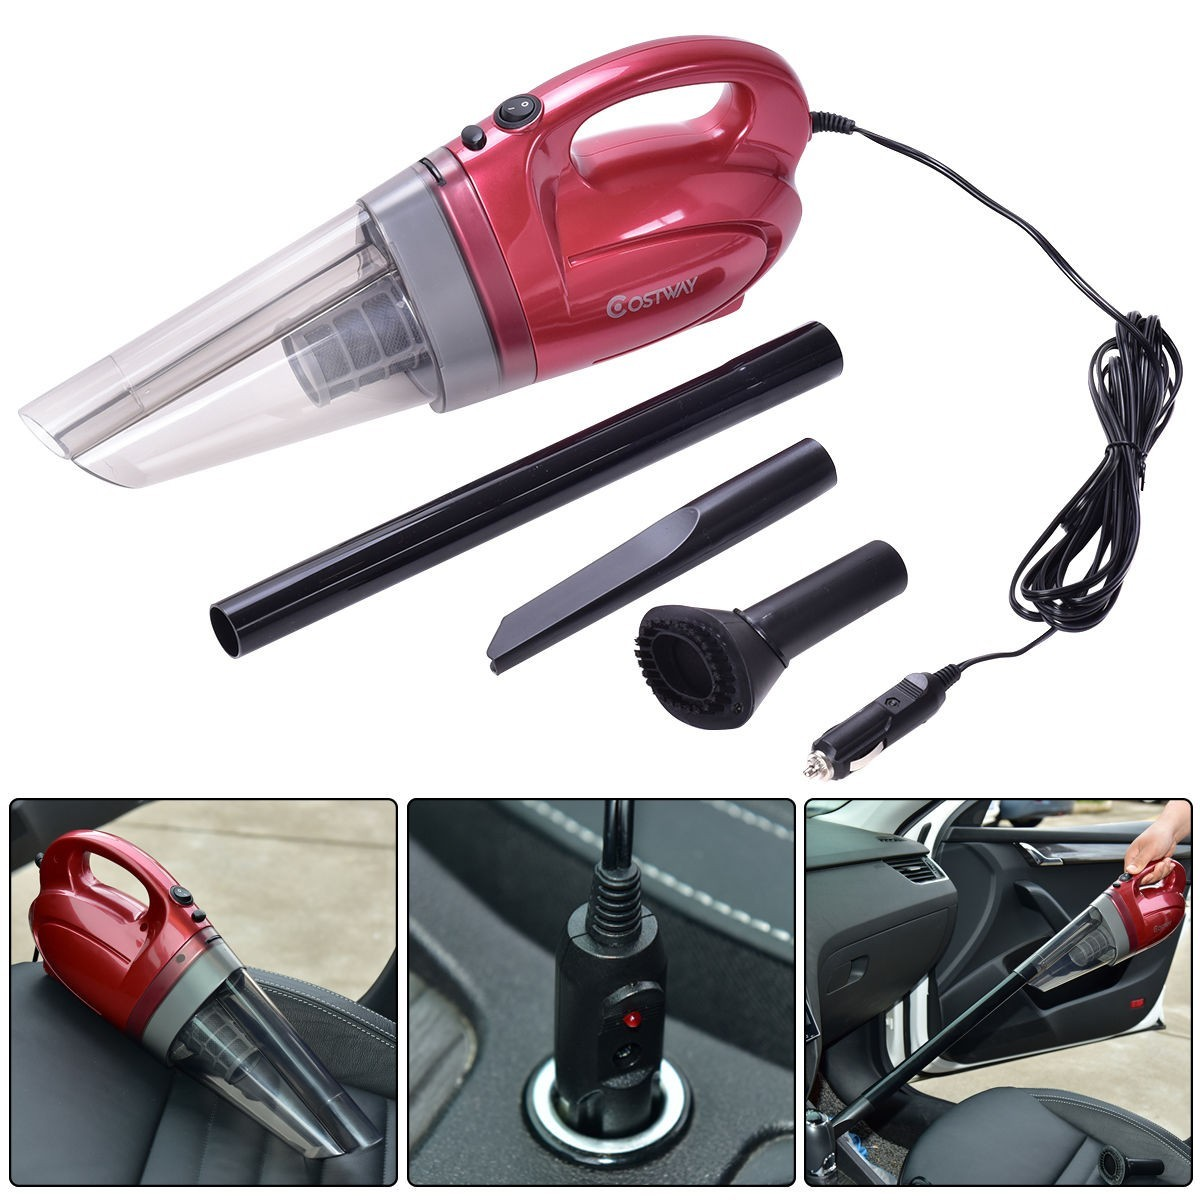 12V 100W Portable Handheld Vacuum Cleaner For Cars - Wine